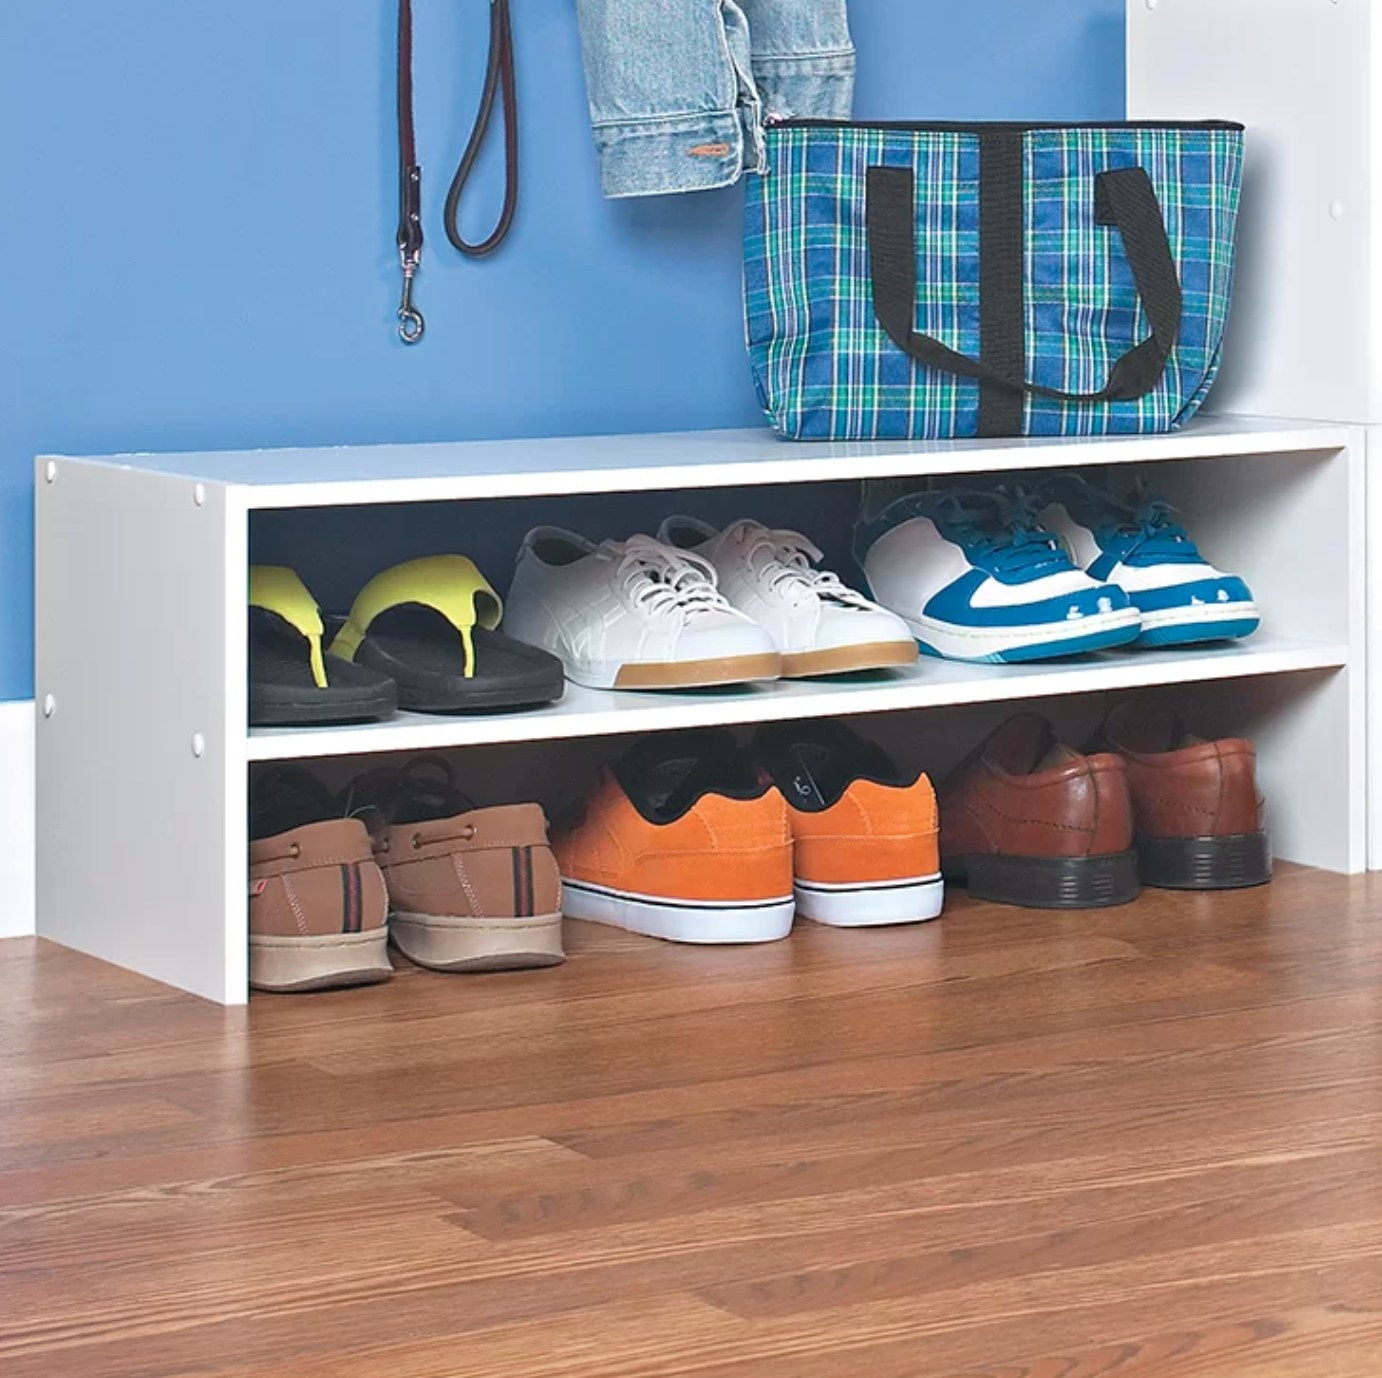 The six pair shoe rack in white holding sneakers and sandals